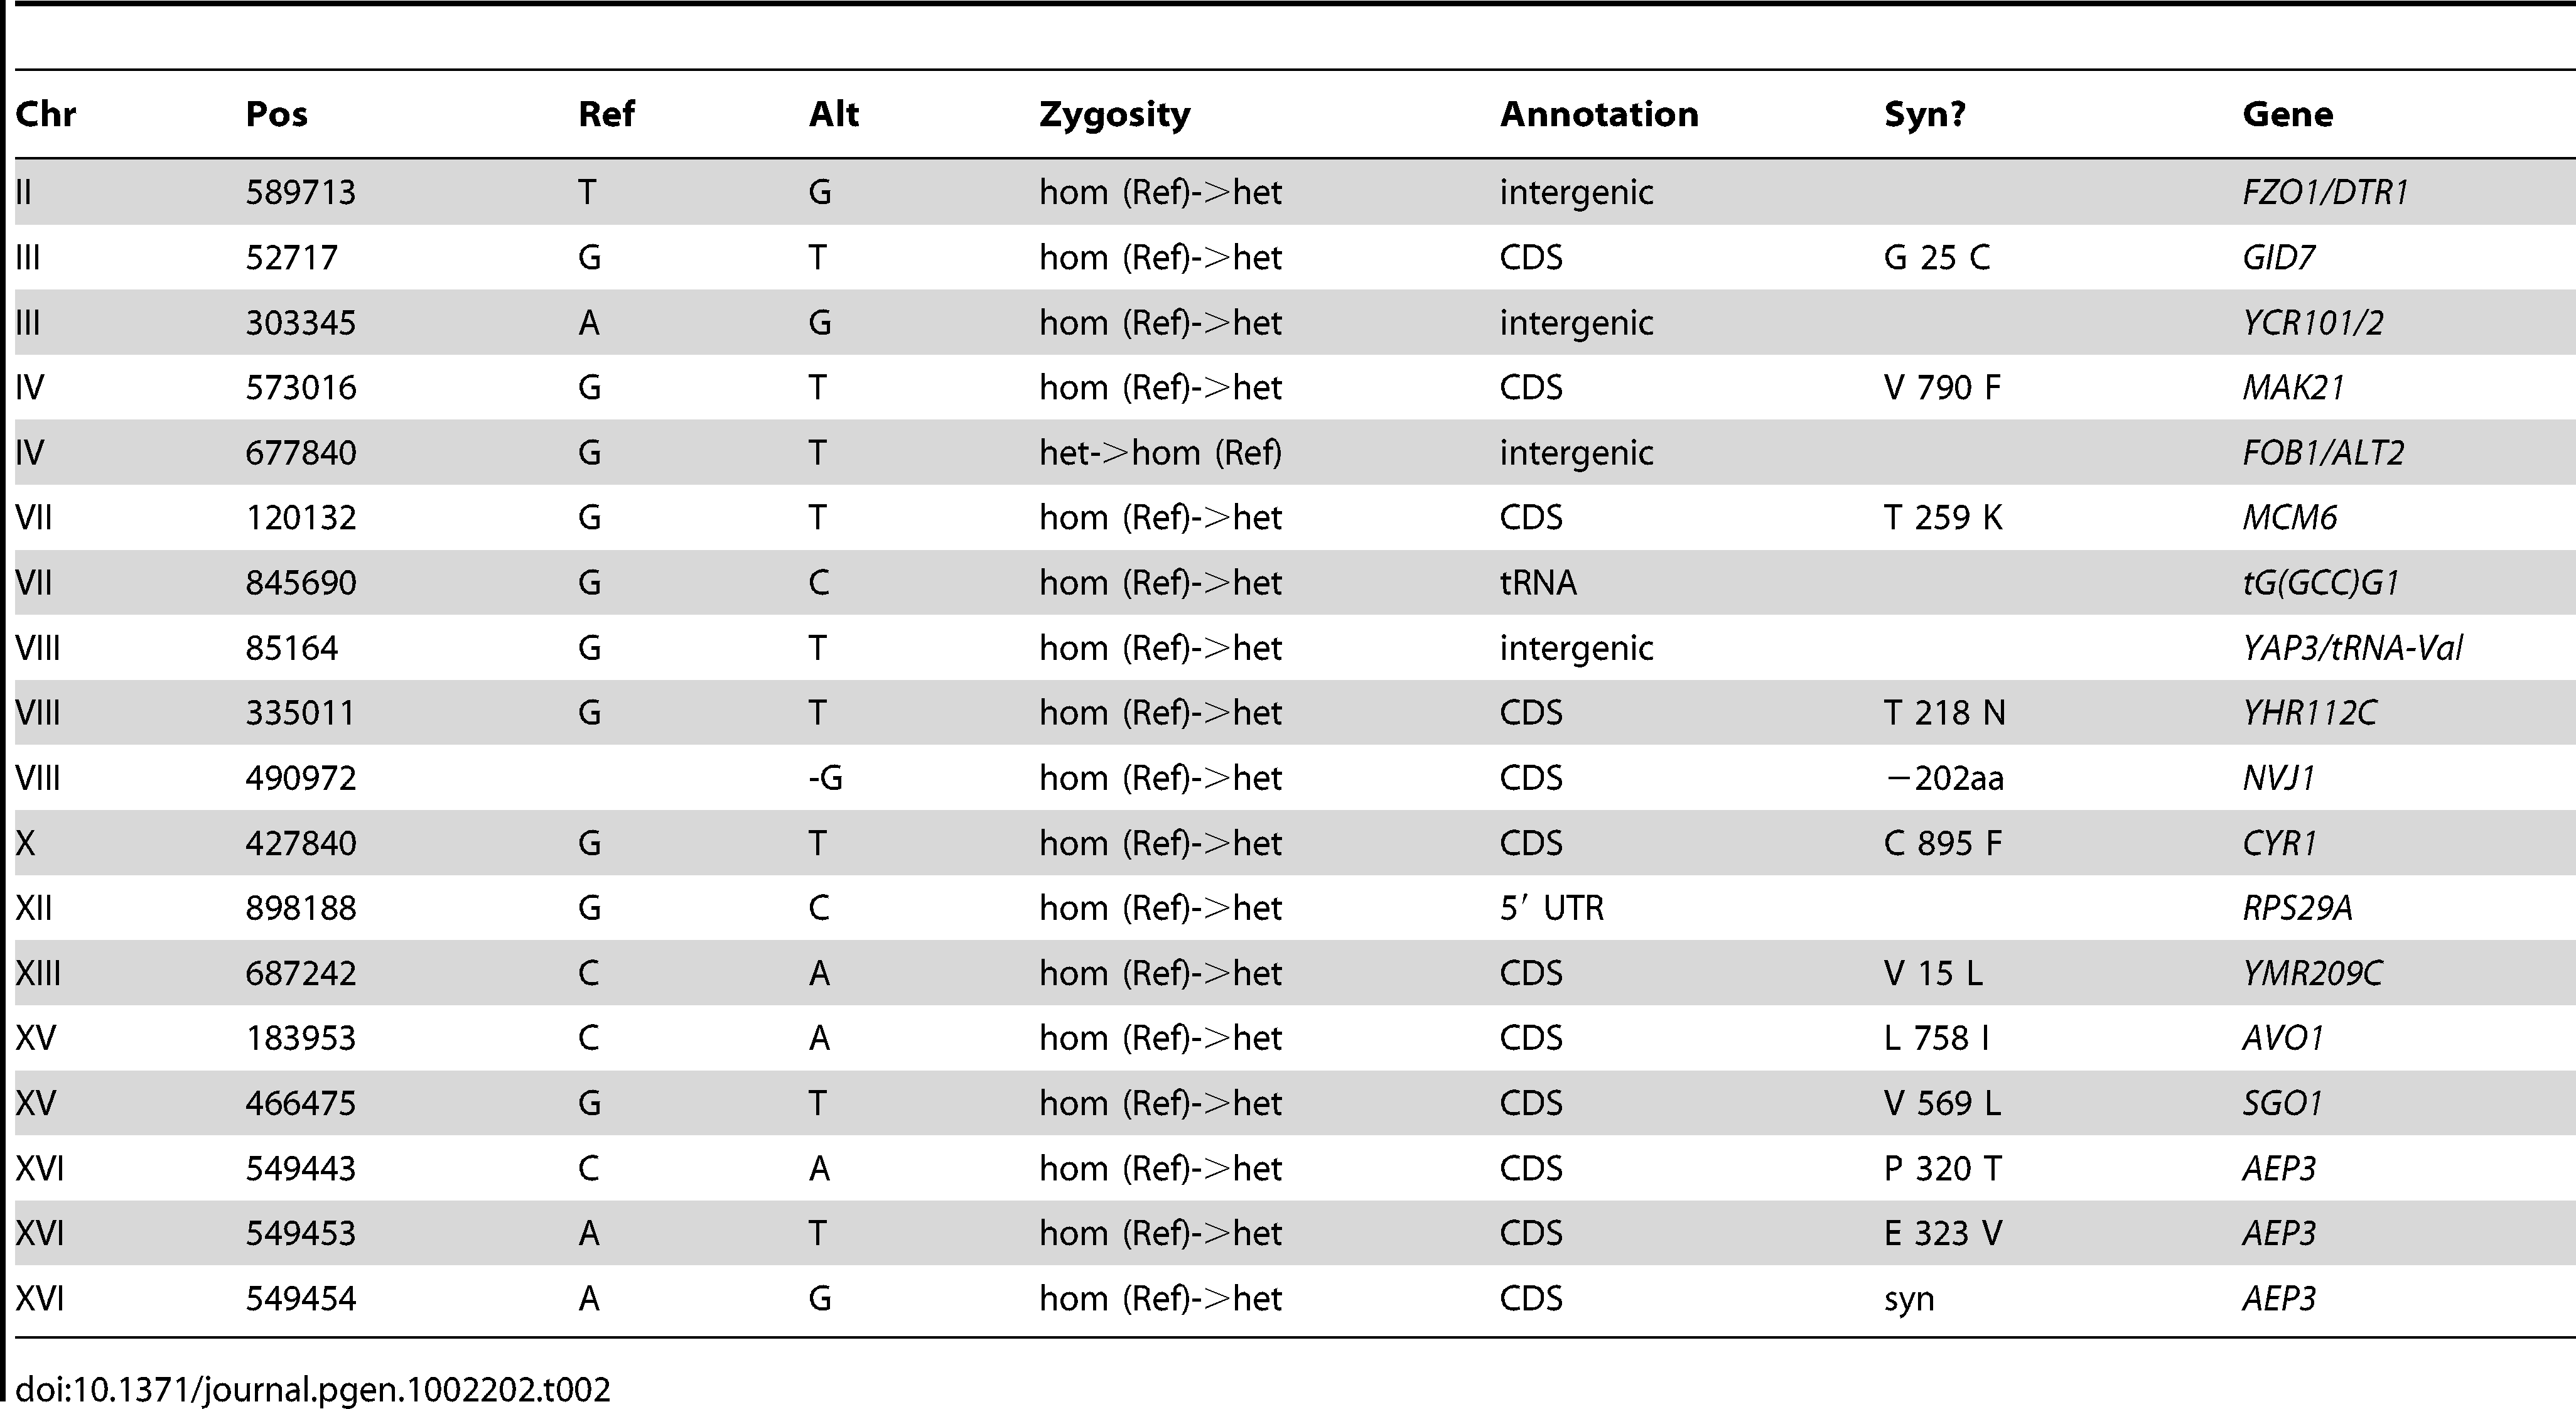 Summary of Substitutions and Indels for E2 (250 generations).